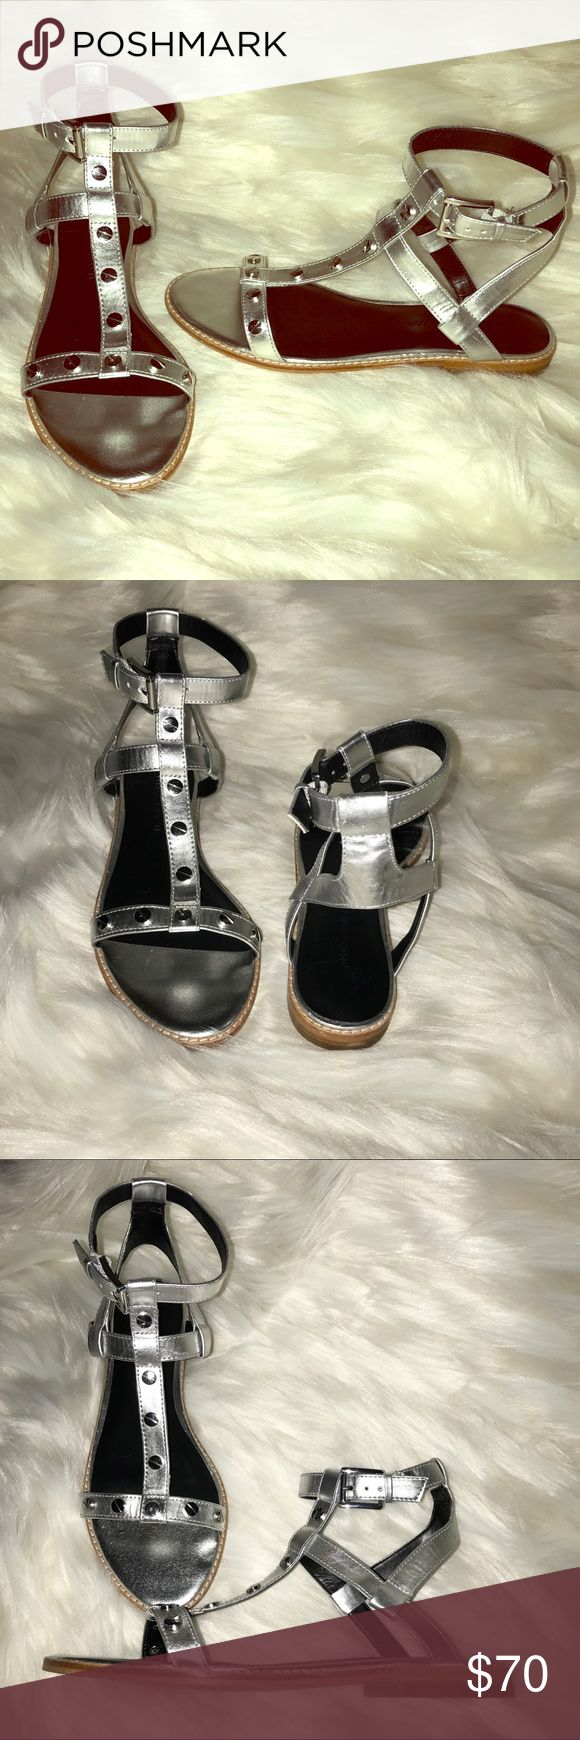 """Rebecca Minkoff⭐️Silver T strap/ Gladiator Sandals Rebecca Minkoff """"Sandy"""" Sandals. These sandals are super cute and stylish. BRAND NEW!! (no box or tags) Embellished with flat nail studs all over a shiny silver color. They have about a half inch heel for a tiny lift. T strap design with adjustable buckle. These shoes sport a smooth man made outsole with a padded footbed. Faux leather. Super cute with a white Tshirt and pair of jeans or a casually chic dress! Rebecca Minkoff Shoes Sandals"""